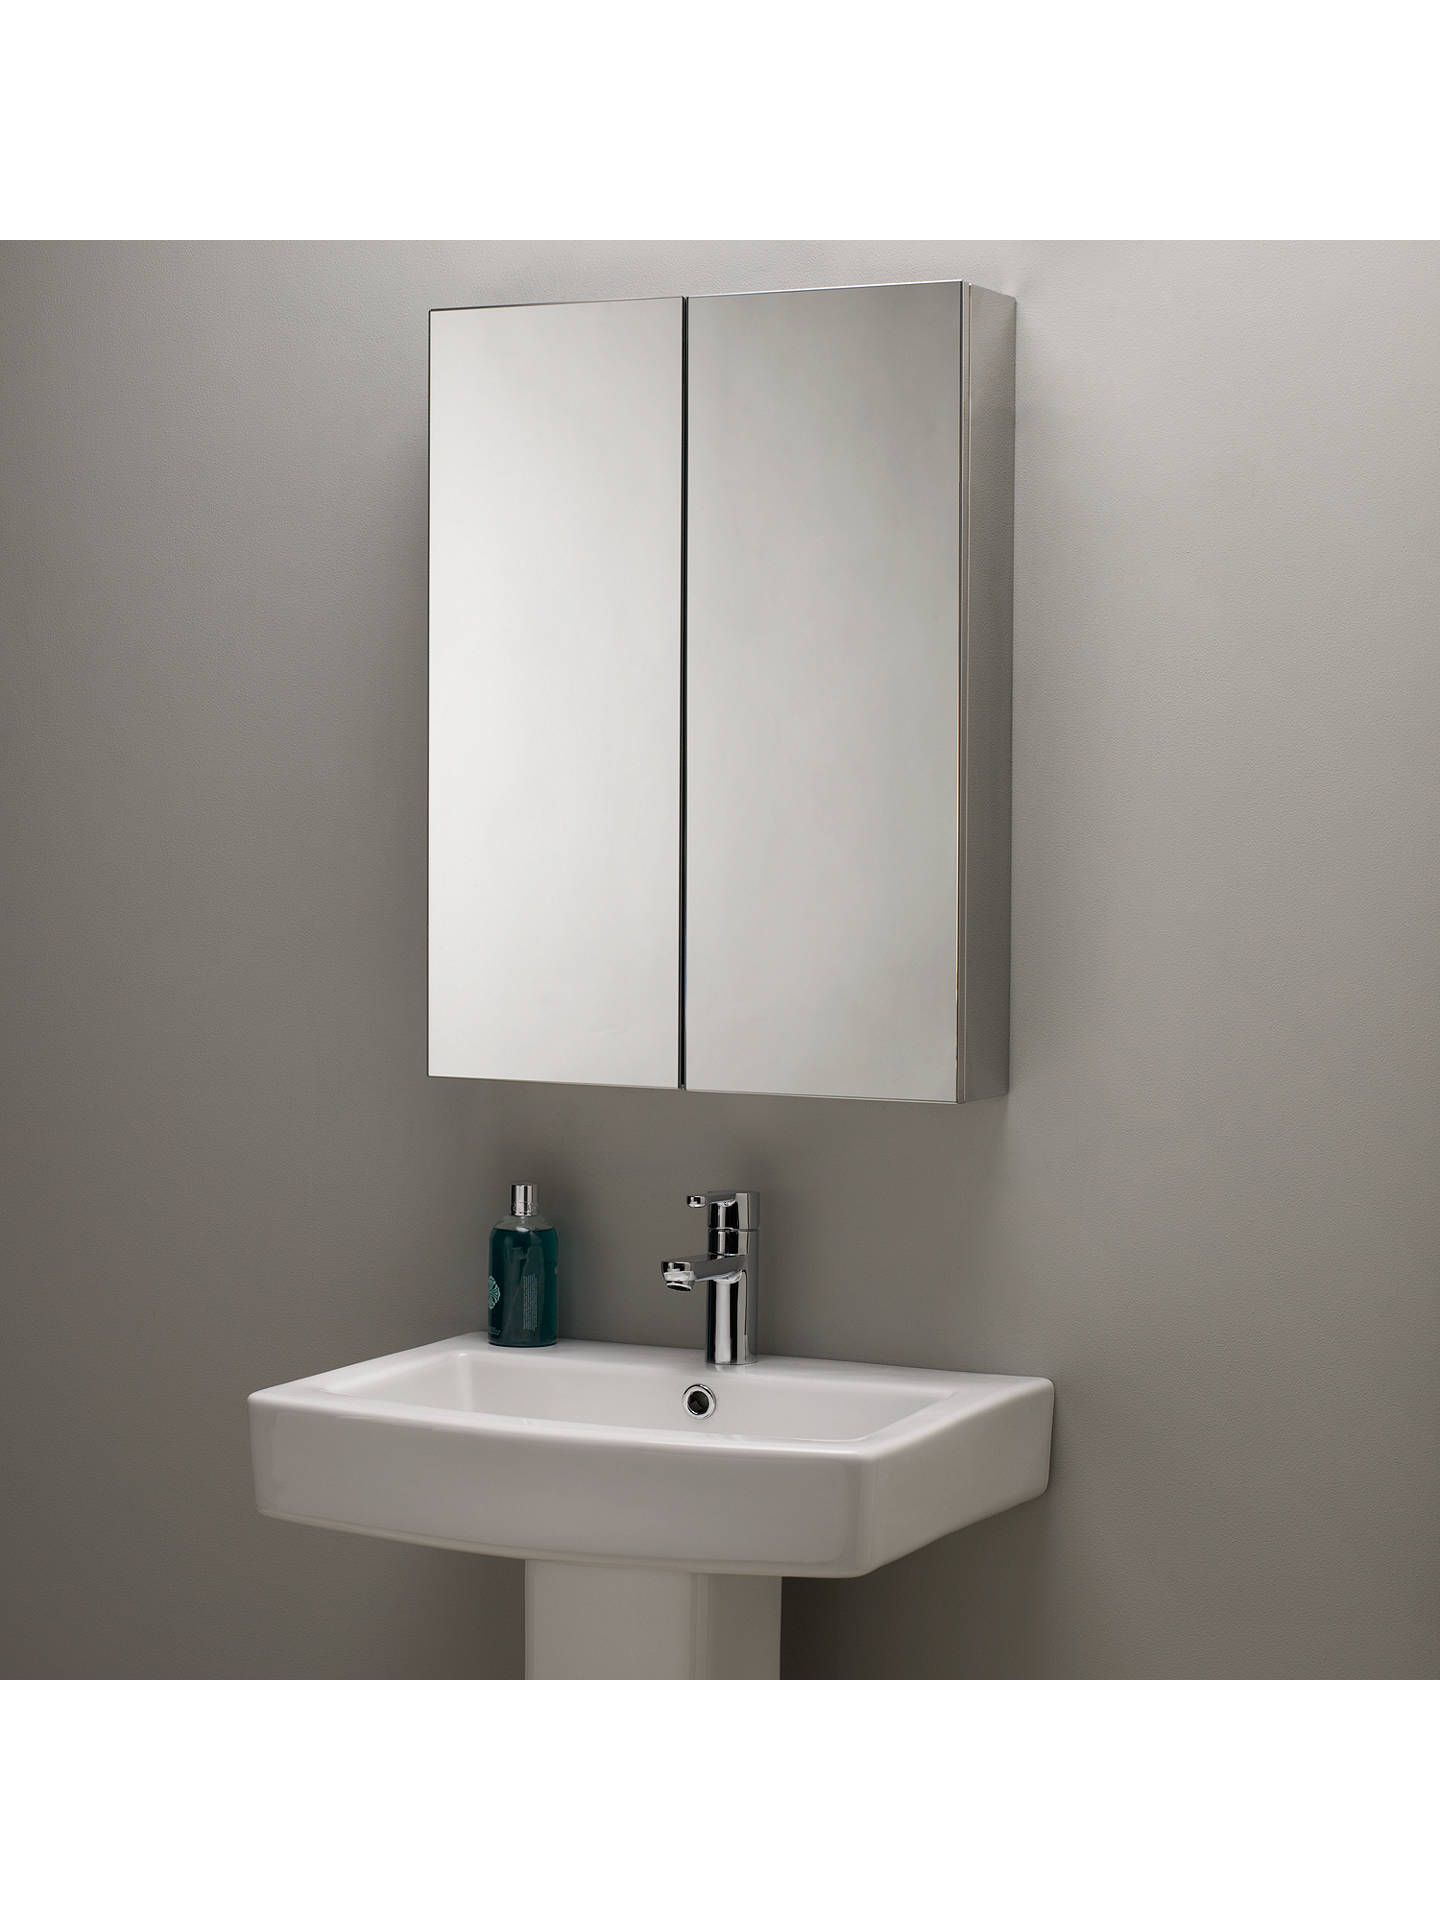 John Lewis Partners Double Mirrored Bathroom Cabinet Stainless Steel Online At Johnlewis